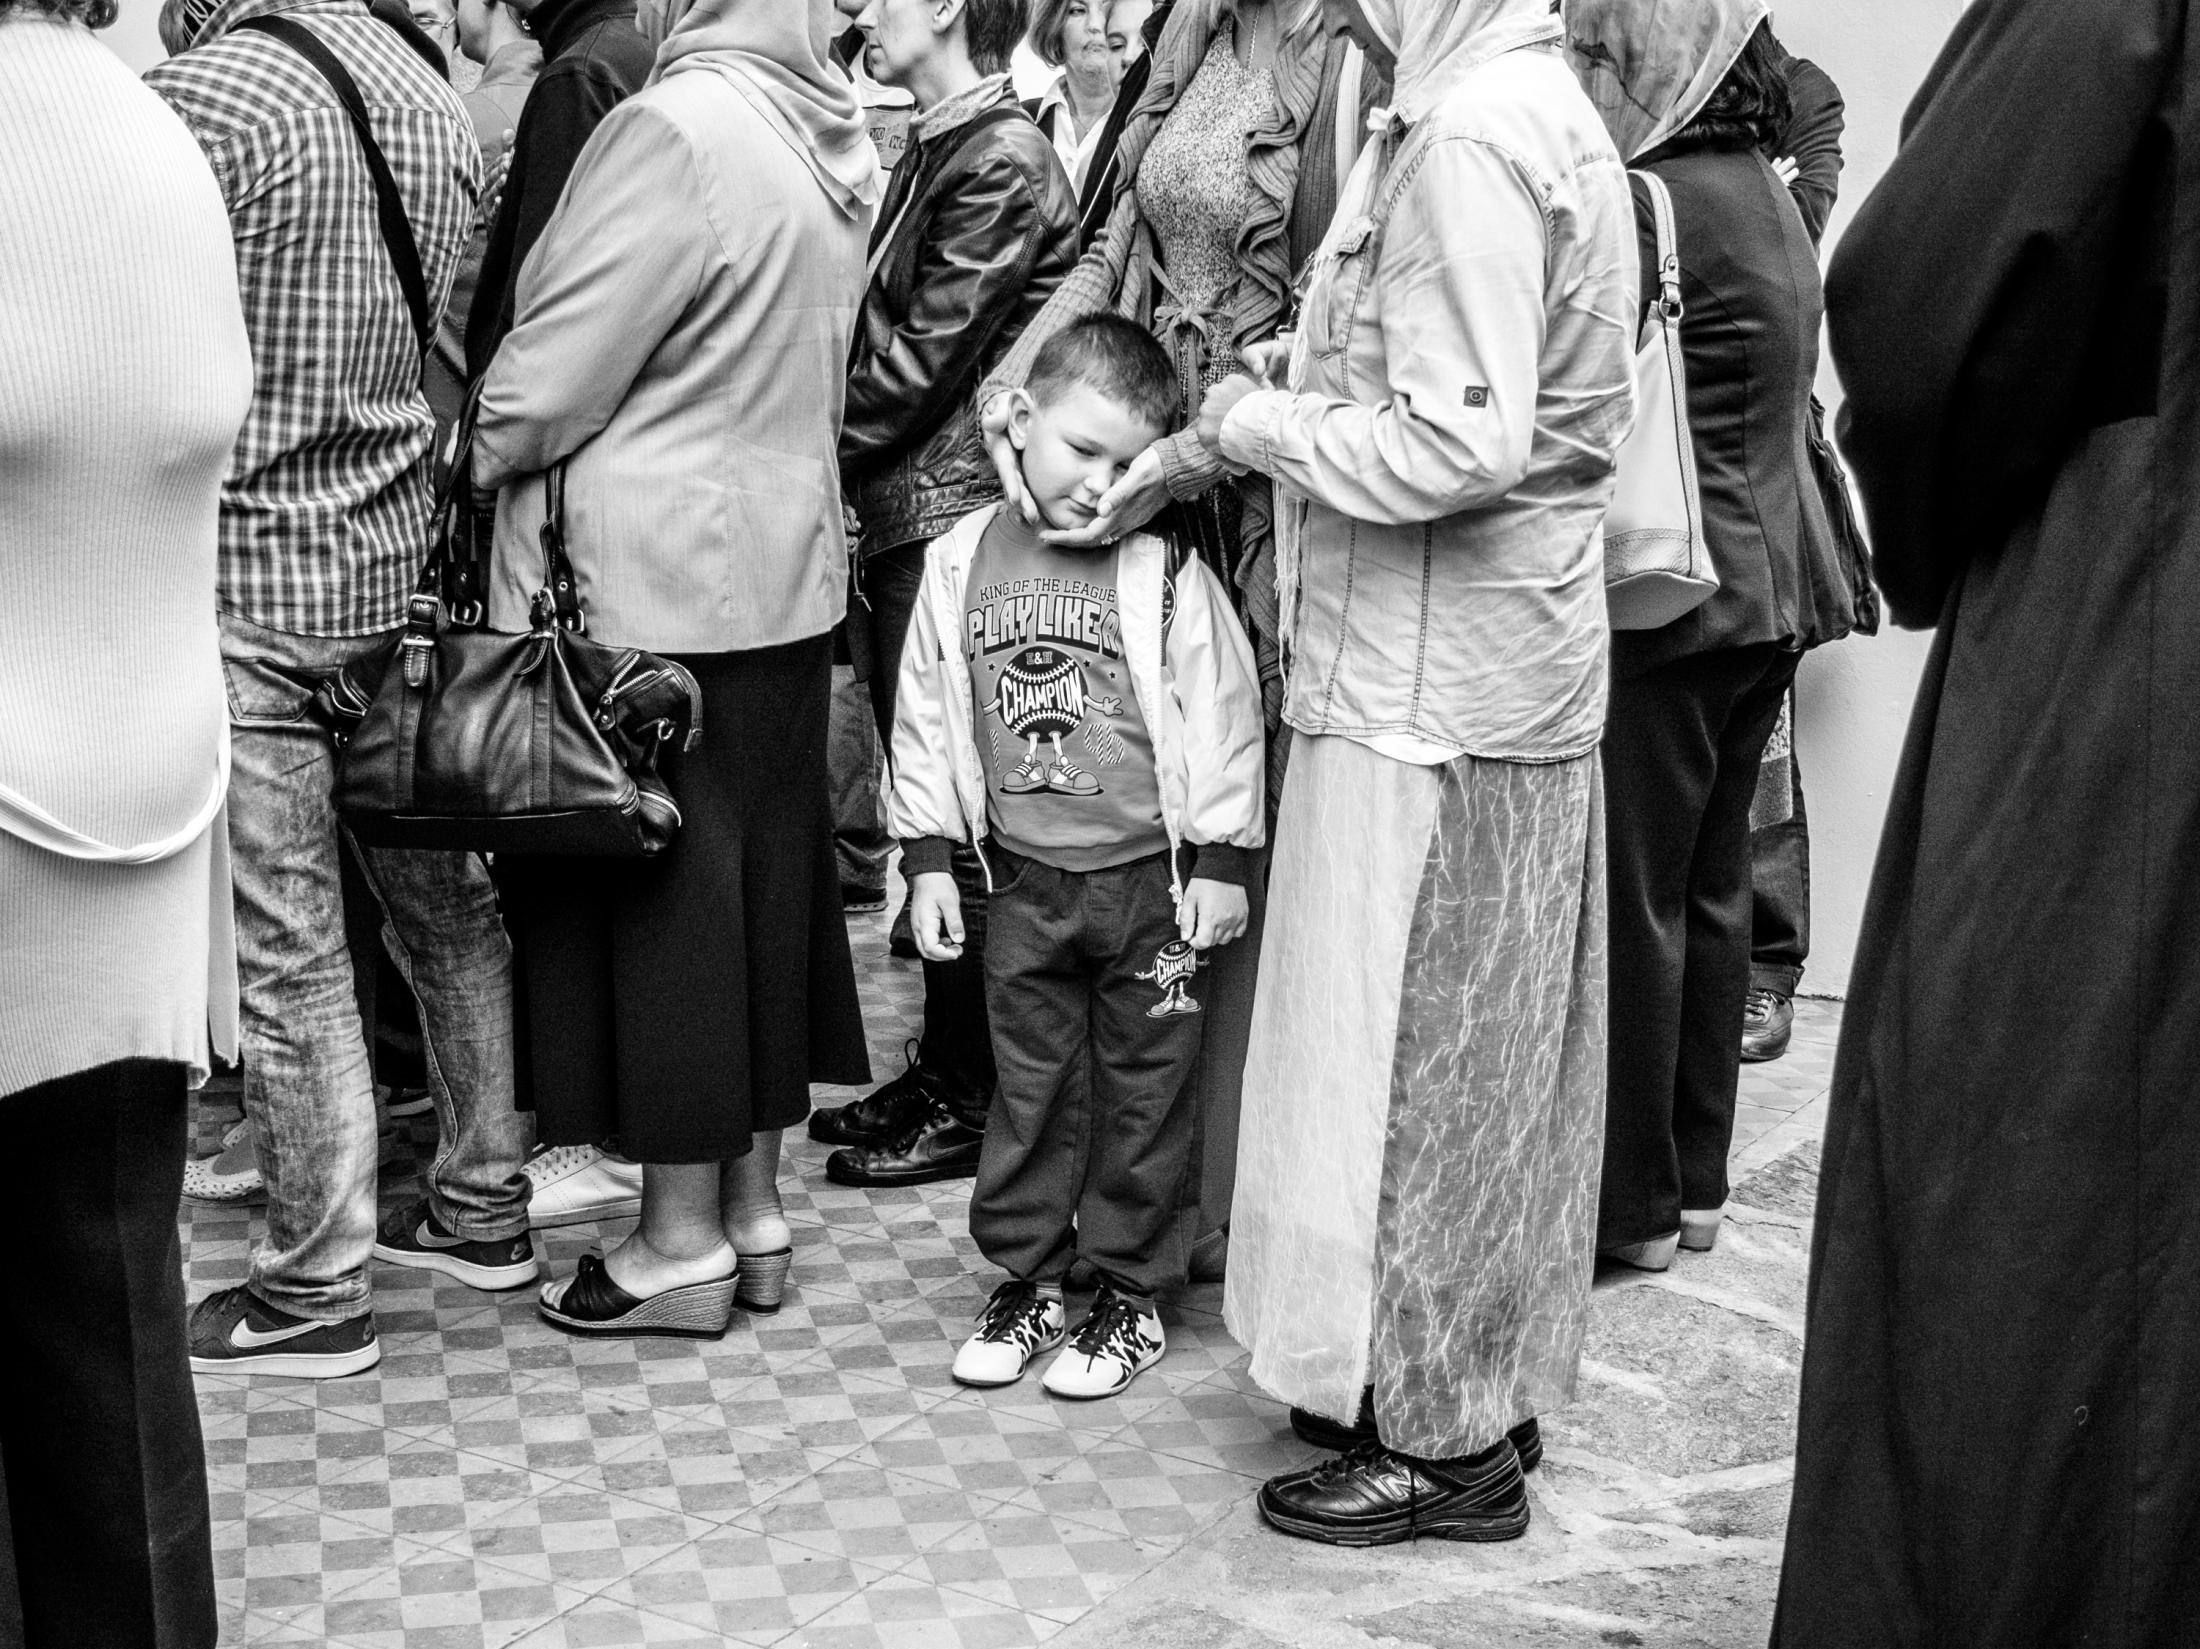 The pilgrims waiting on entrance in front of orthodox Krusedol monastery. Religious tourism is one of the newer forms of tourism in Serbia with a tendency to develop. In the last ten years especially, it has been triggered by a general recovery of practicing religious customs and Christian beliefs. Fruska Gora, Serbia 2016